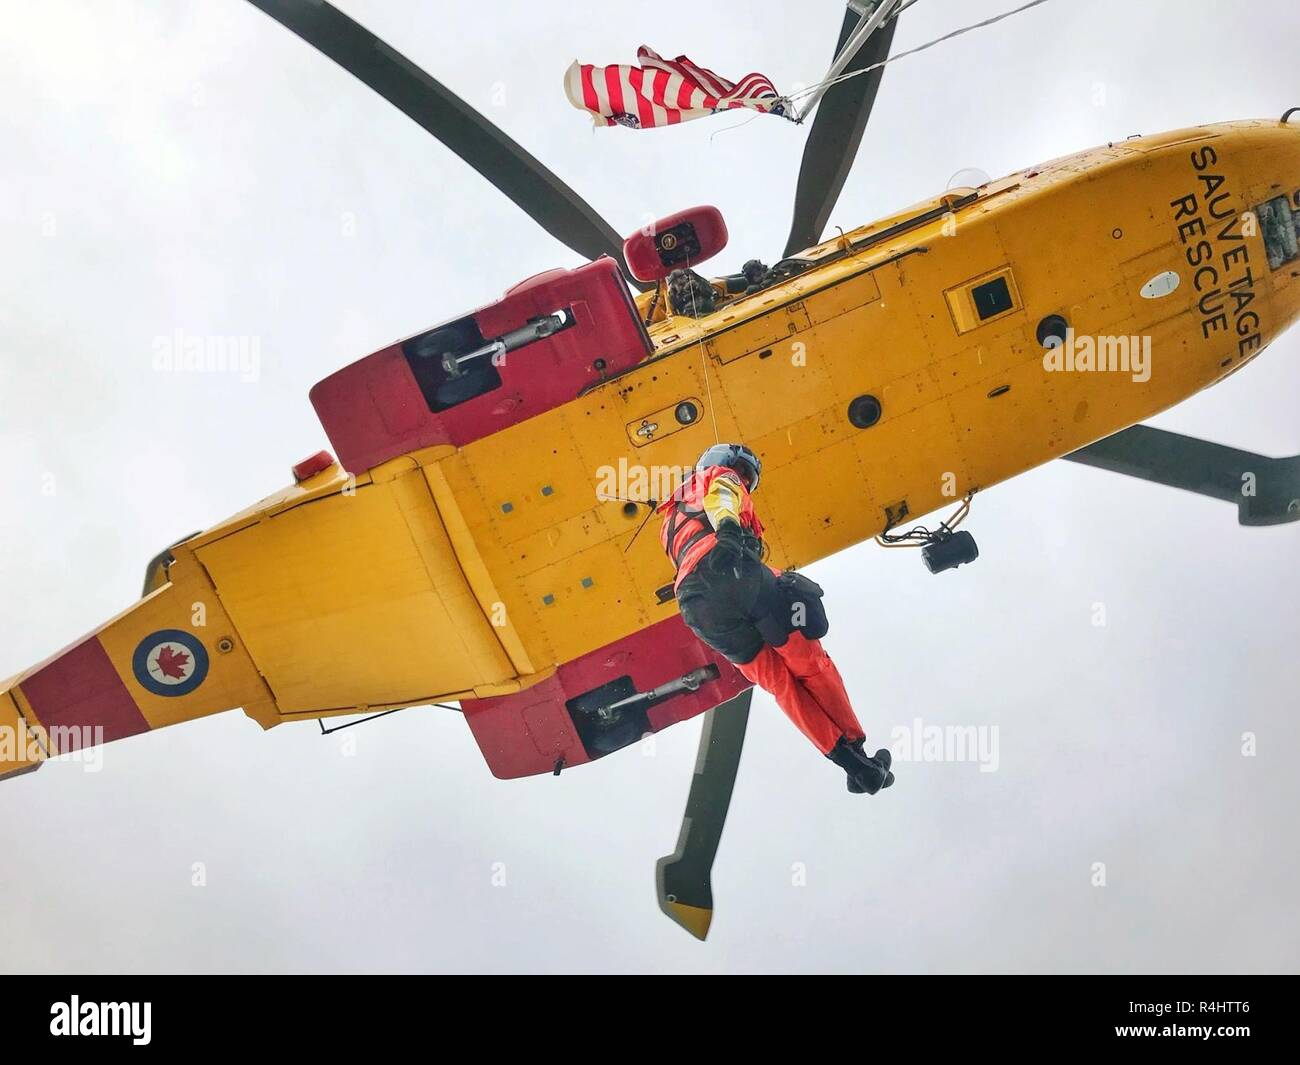 An aviation survival technician from U.S. Coast Guard Air Station/Sector Field Office Port Angeles is suspended by the crew of a Royal Canadian Air Force CH-149 Cormorant helicopter during joint training in the Strait of Juan de Fuca, Wash., Oct. 3, 2018.    The cormorant is one of two primary rotary-wing aircraft used by the RCAF for search and rescue responses. - Stock Image